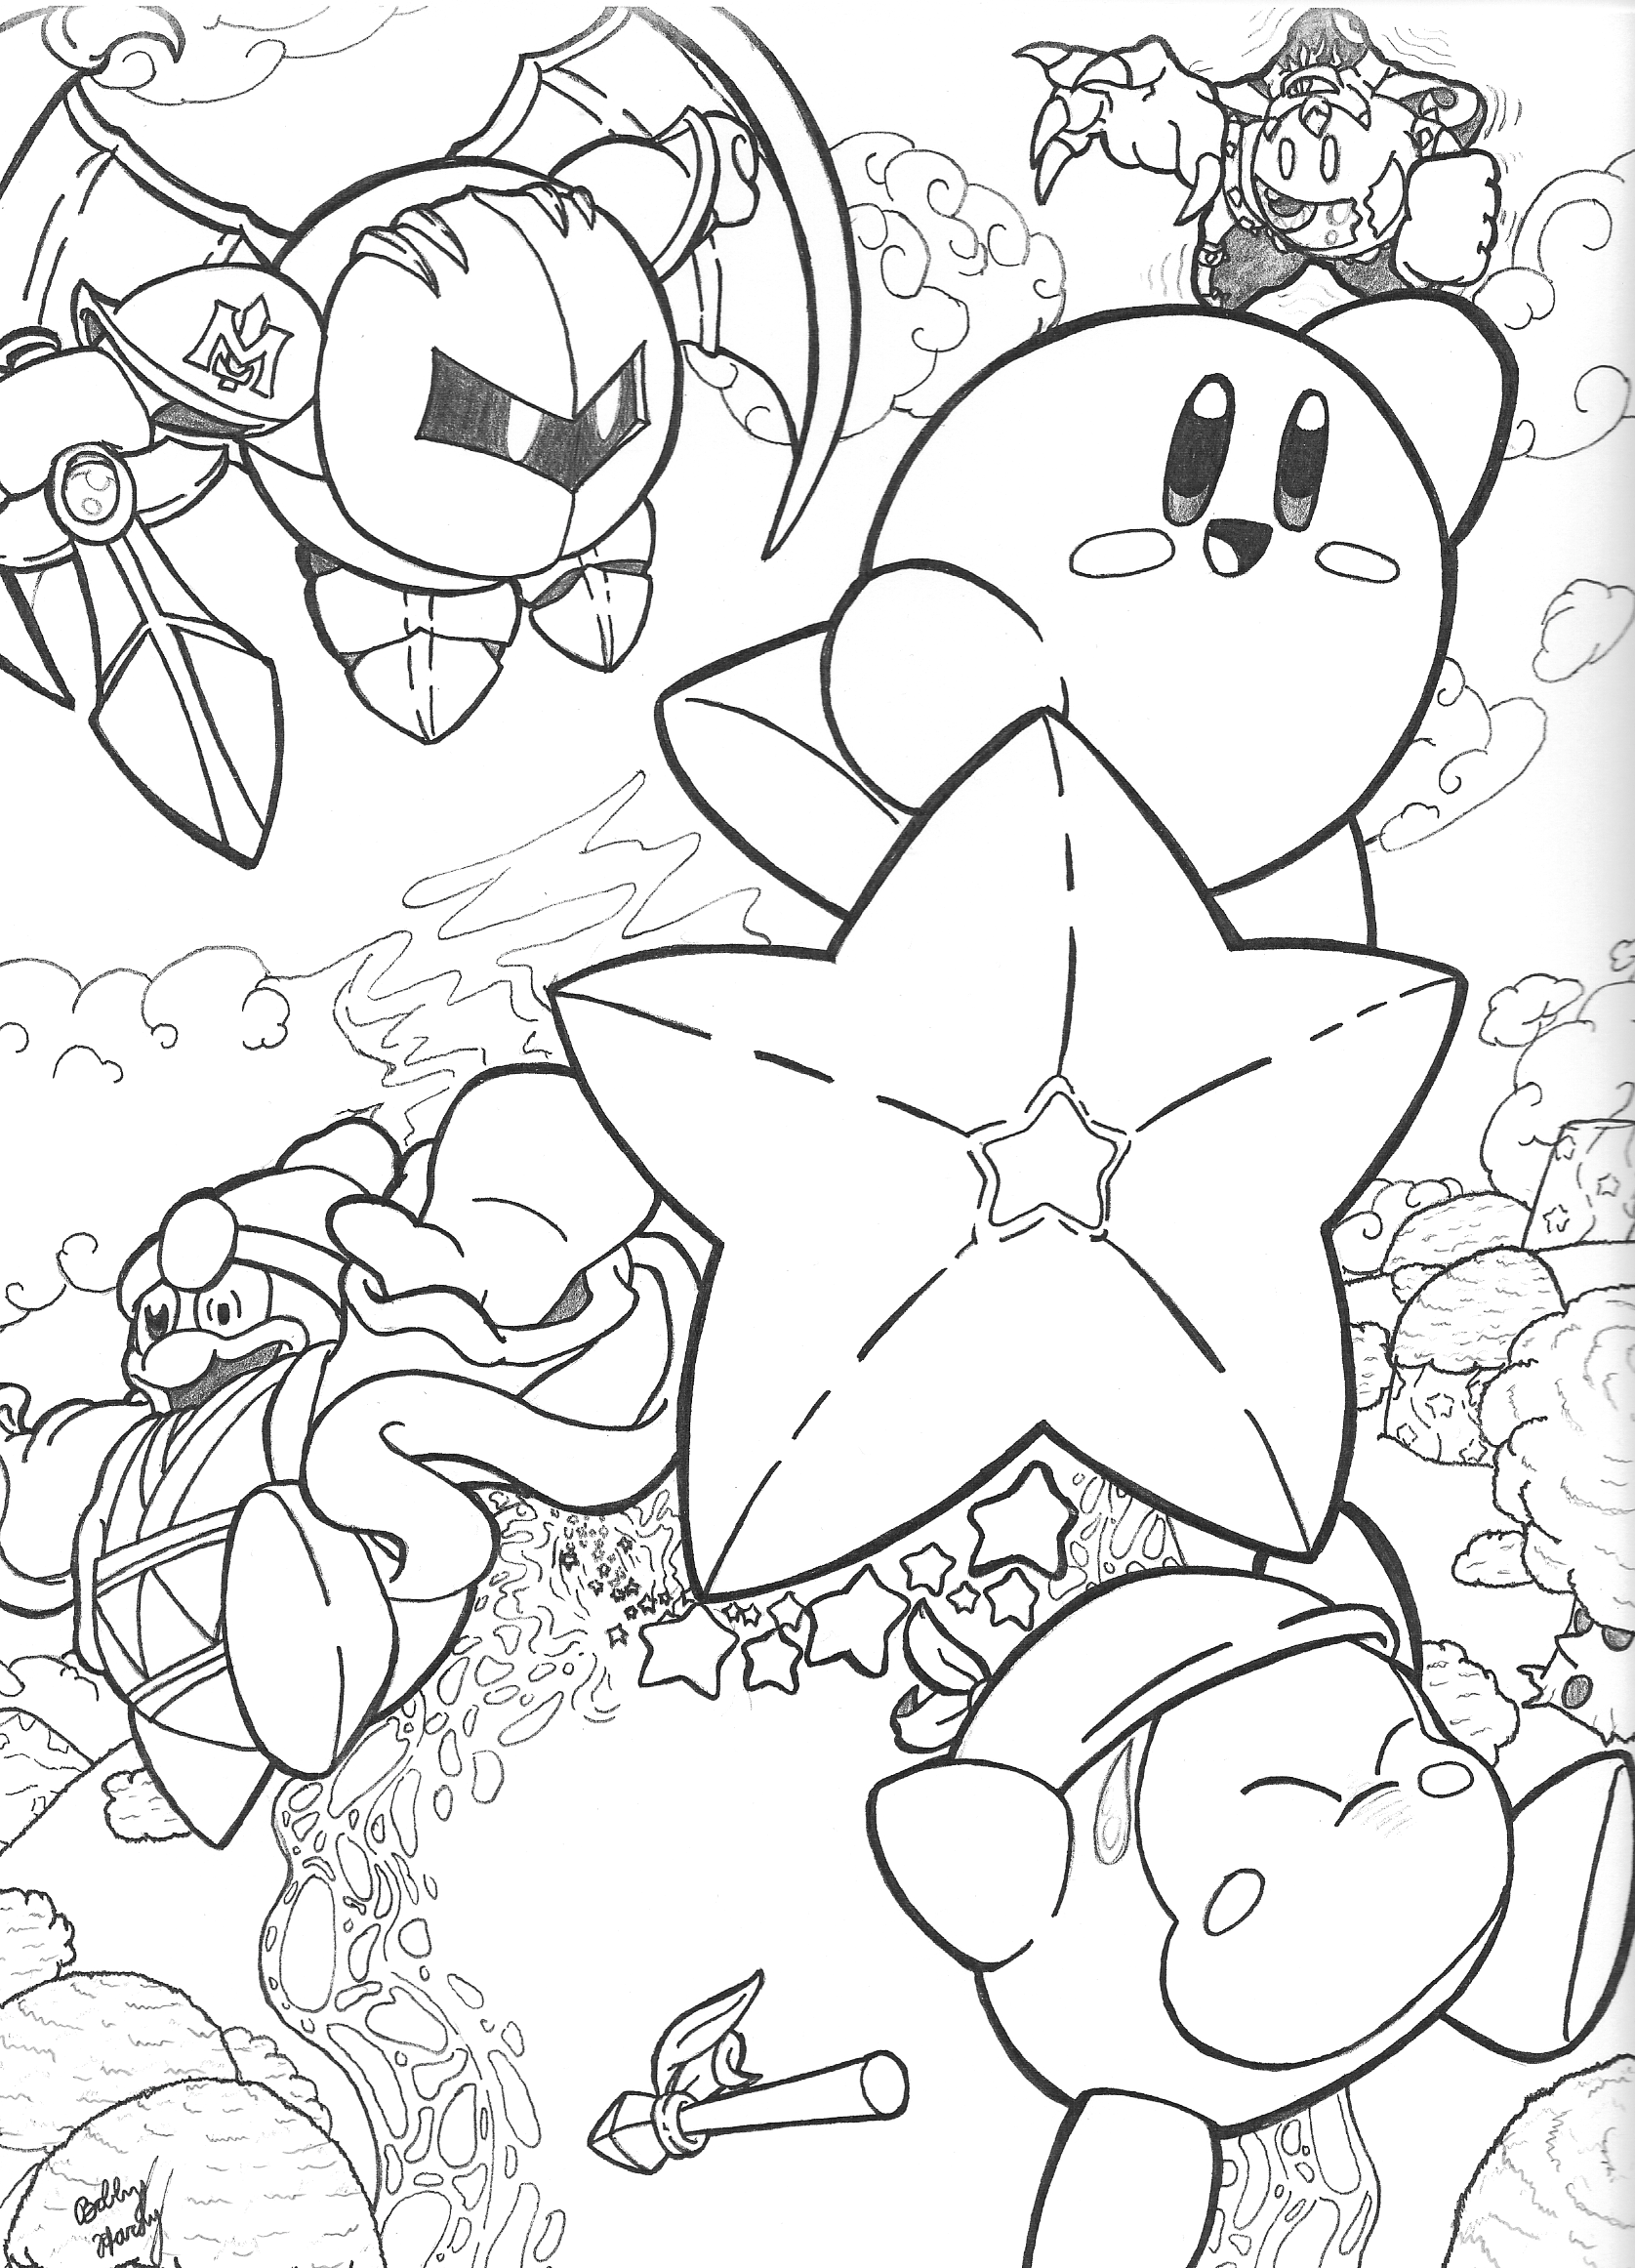 poko coloring pages - photo#32